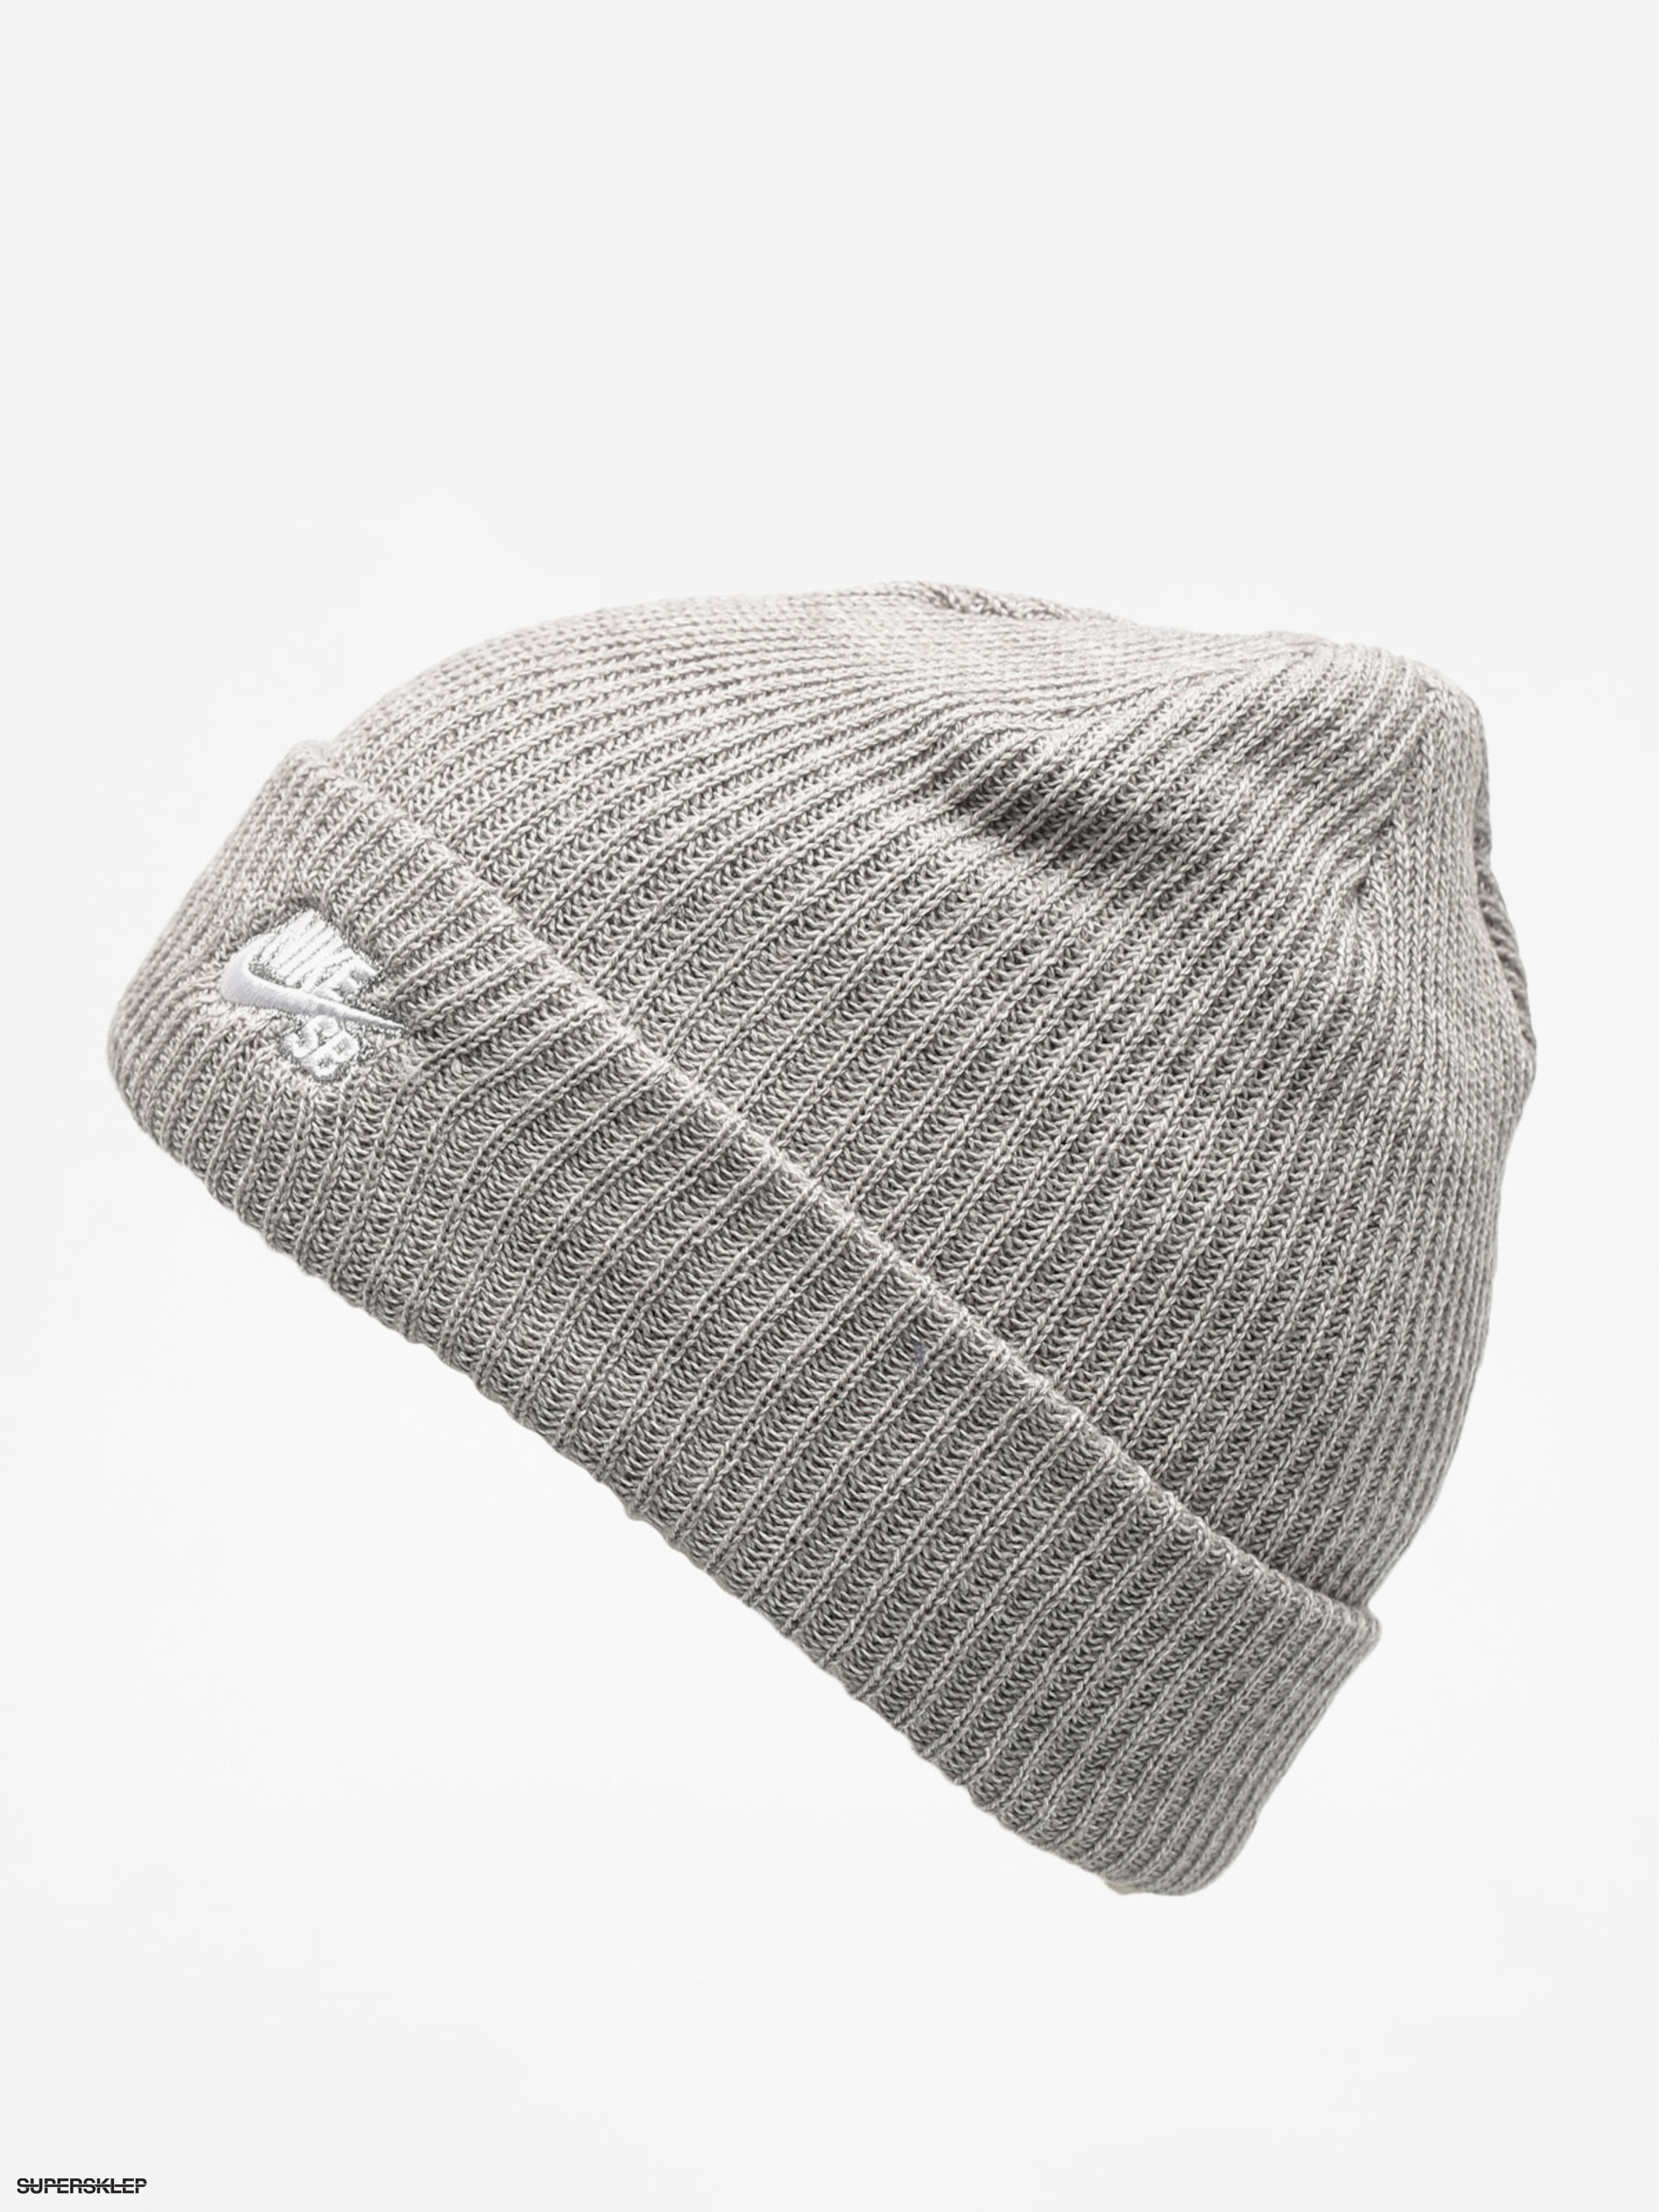 half off 2ae2f e0899 Czapka zimowa Nike SB Sb Fisherman Beanie (dk grey heather white)